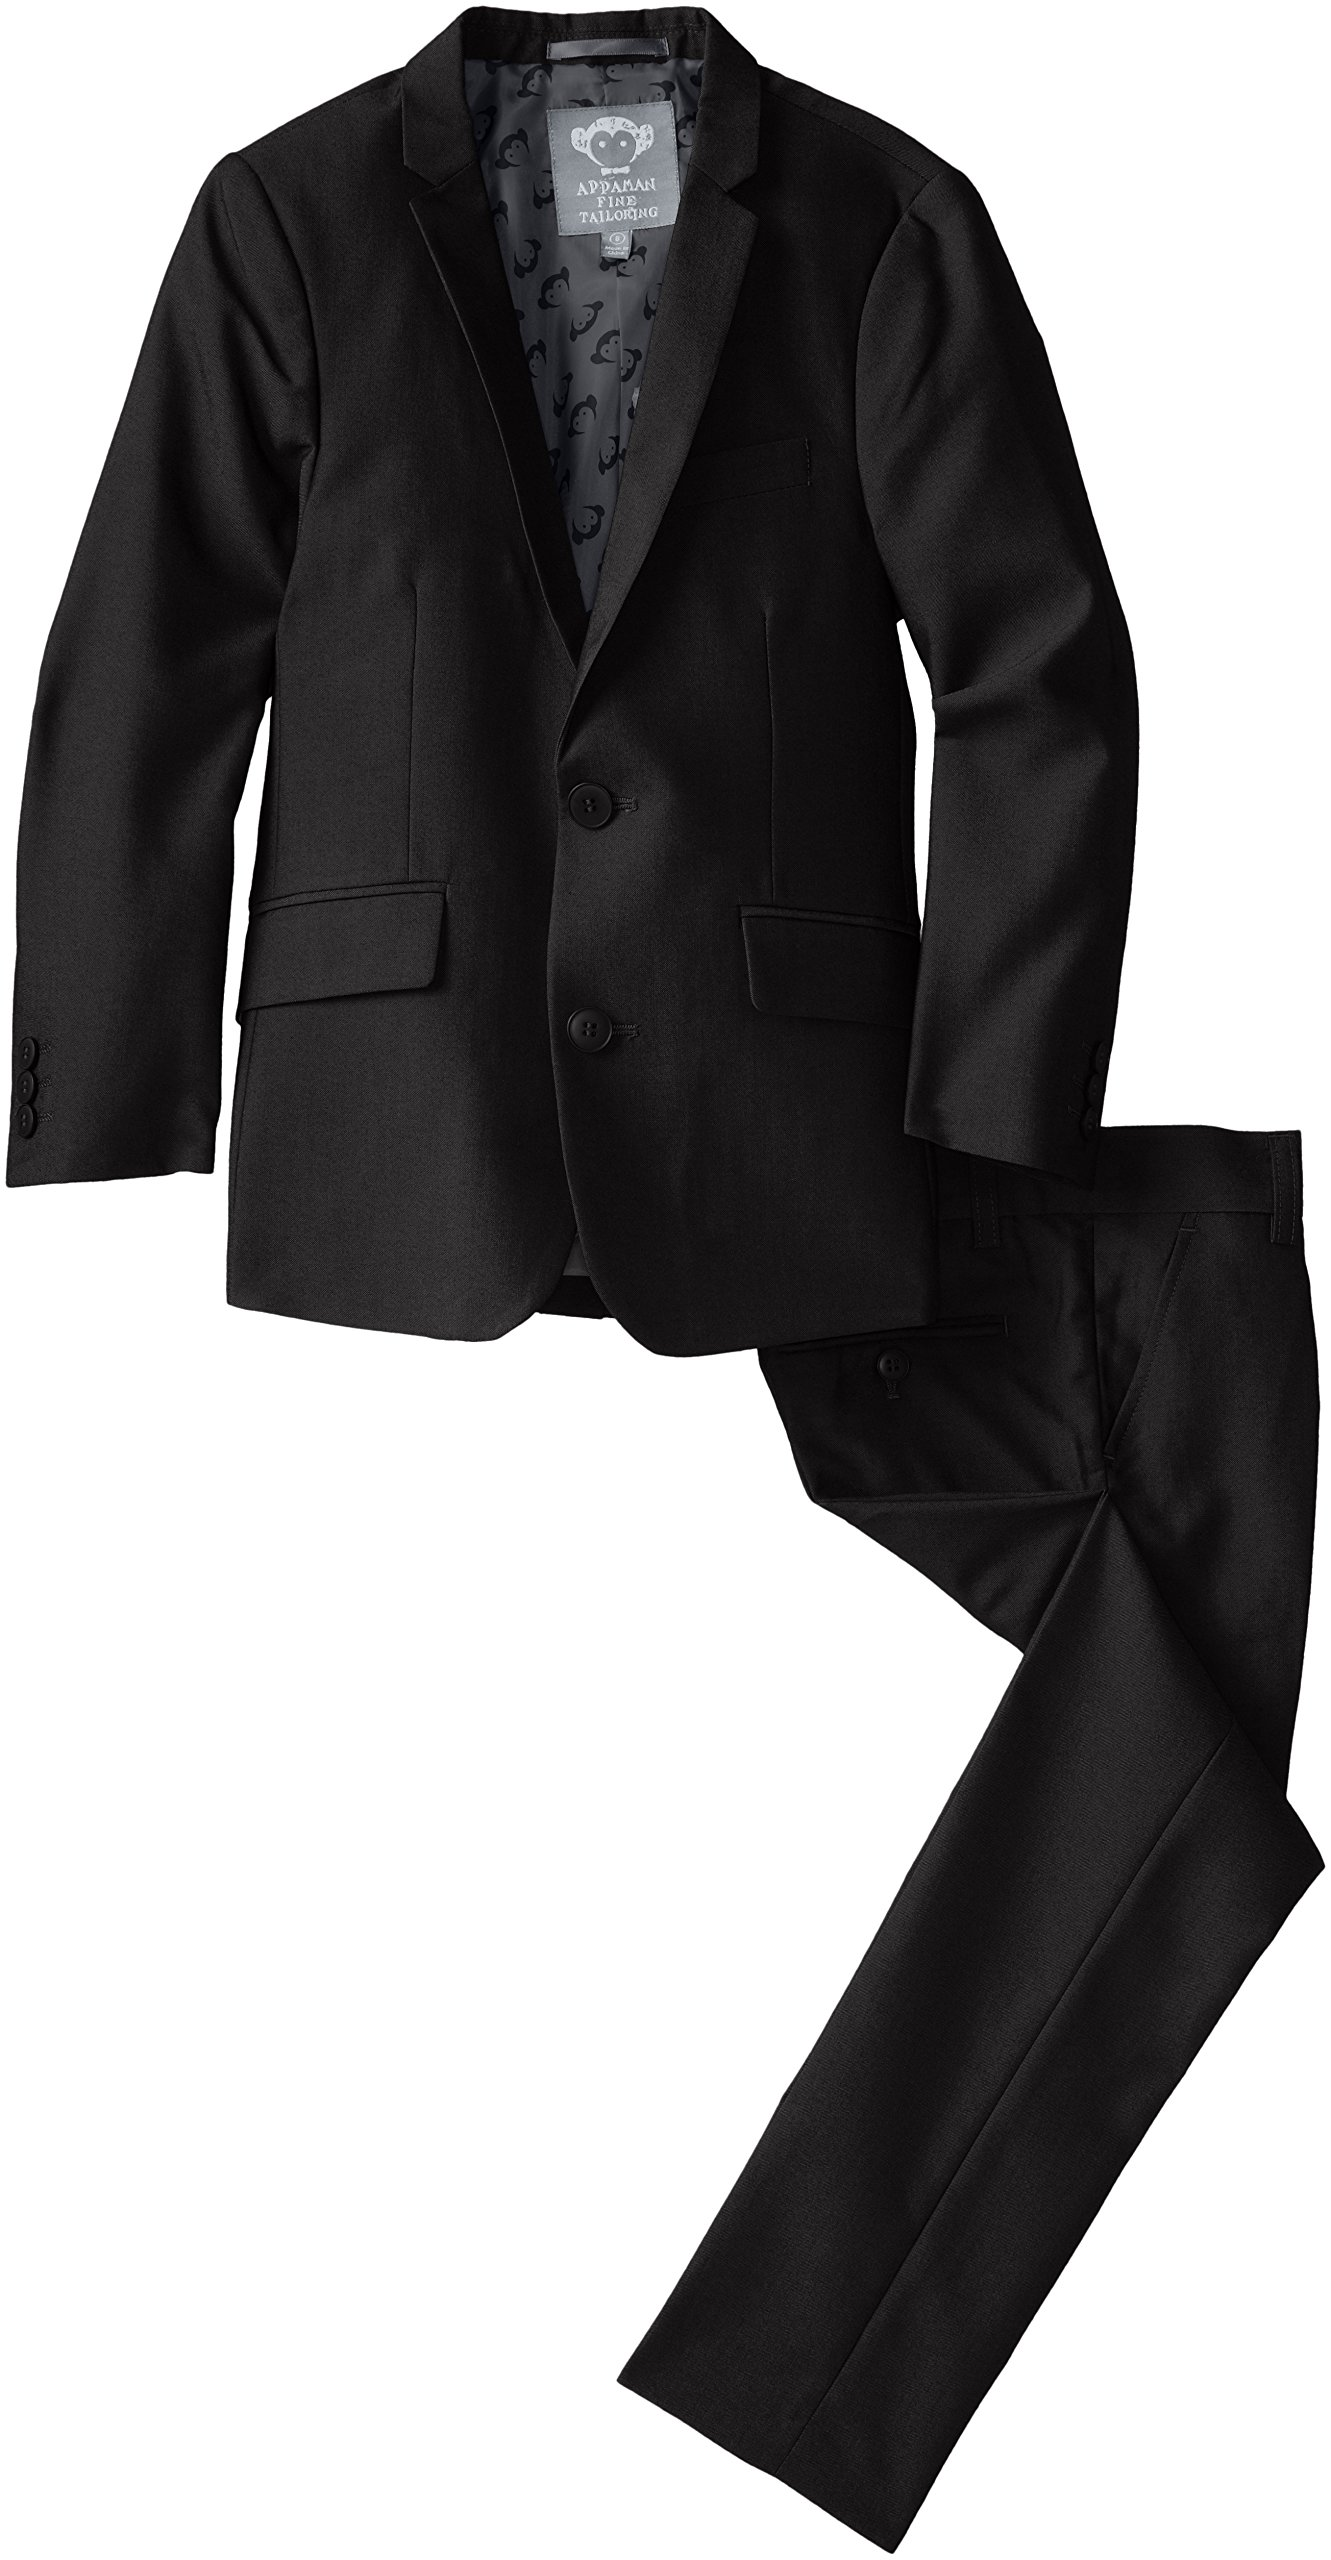 Appaman Big Boys' Two Piece Classic Mod Suit, Black, 10